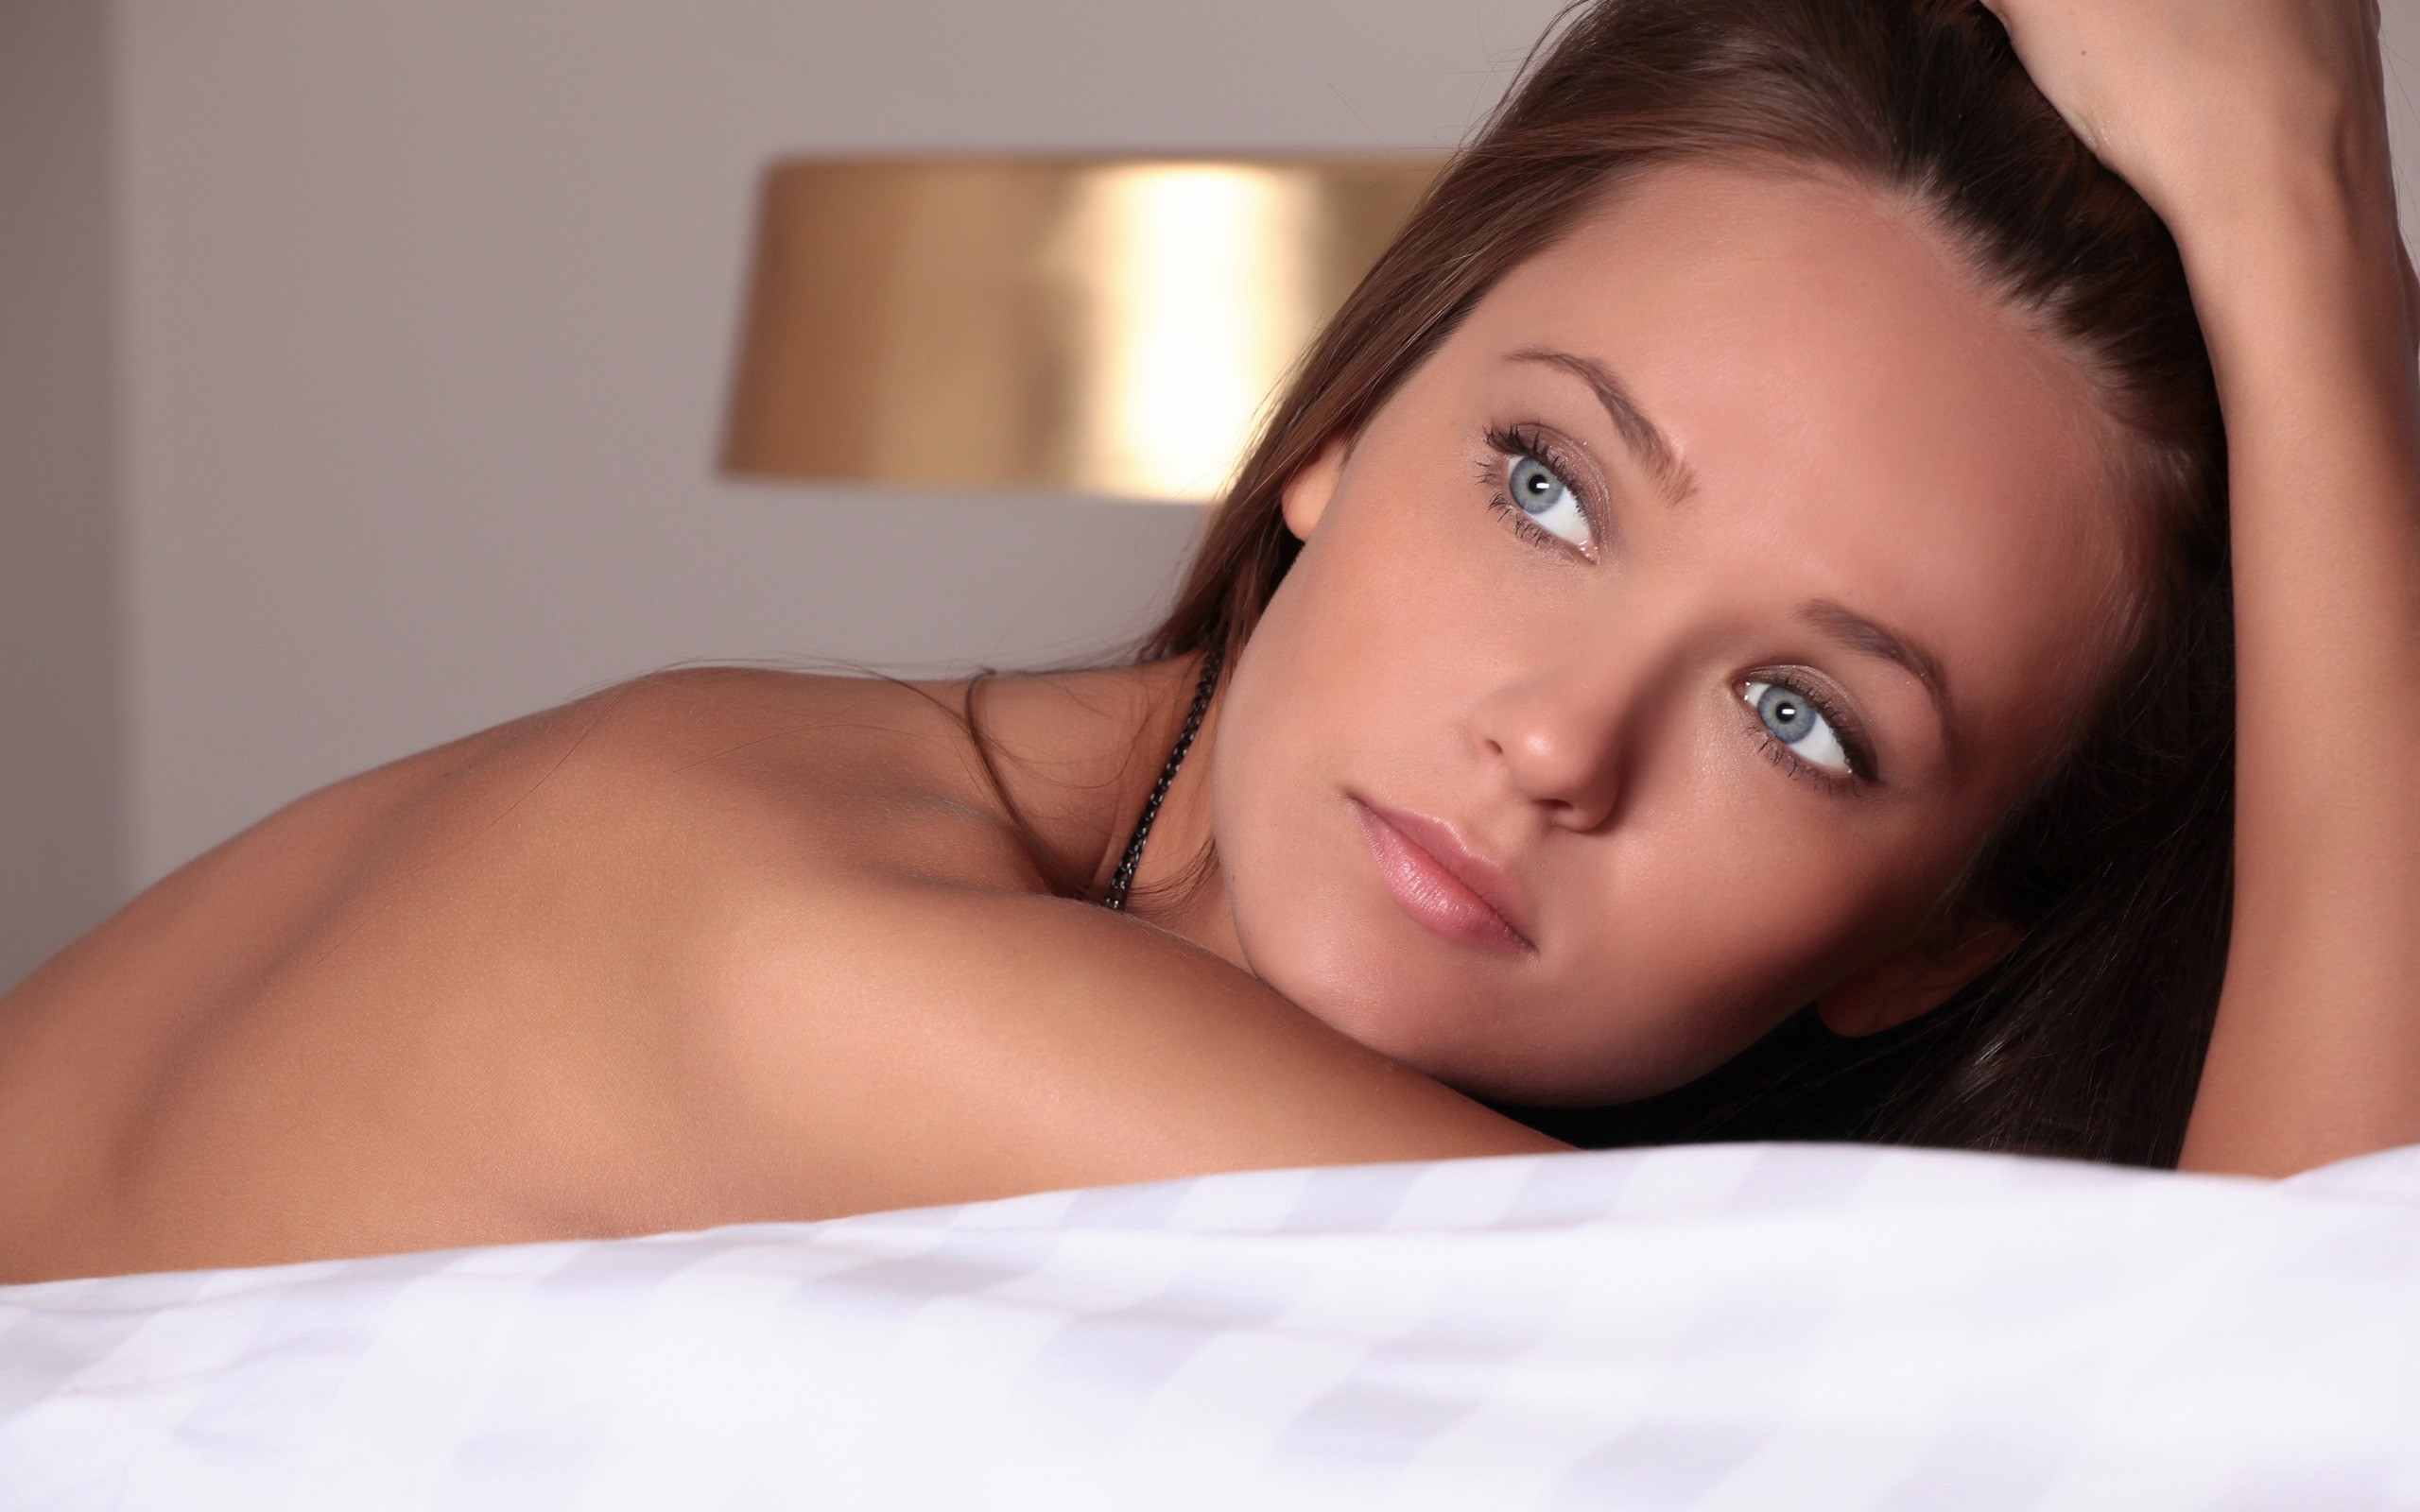 With blue eyes nude girls